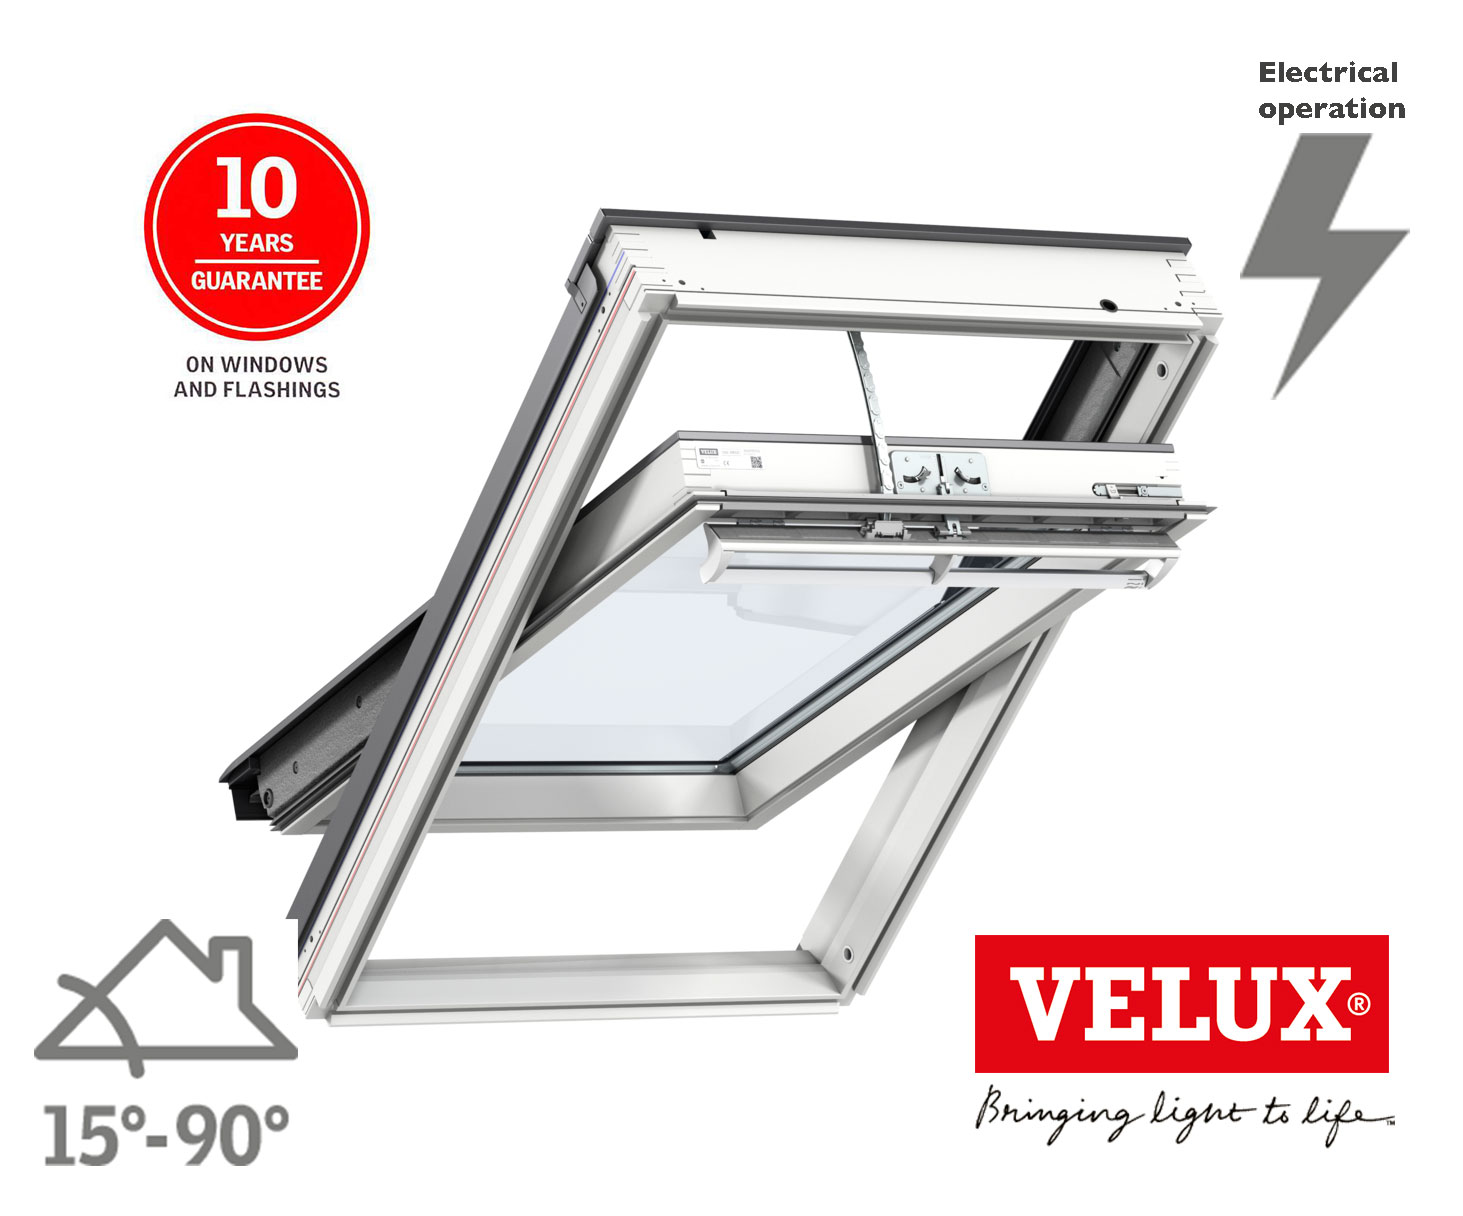 velux integra roof window ggl electric white painted skyline roofing. Black Bedroom Furniture Sets. Home Design Ideas